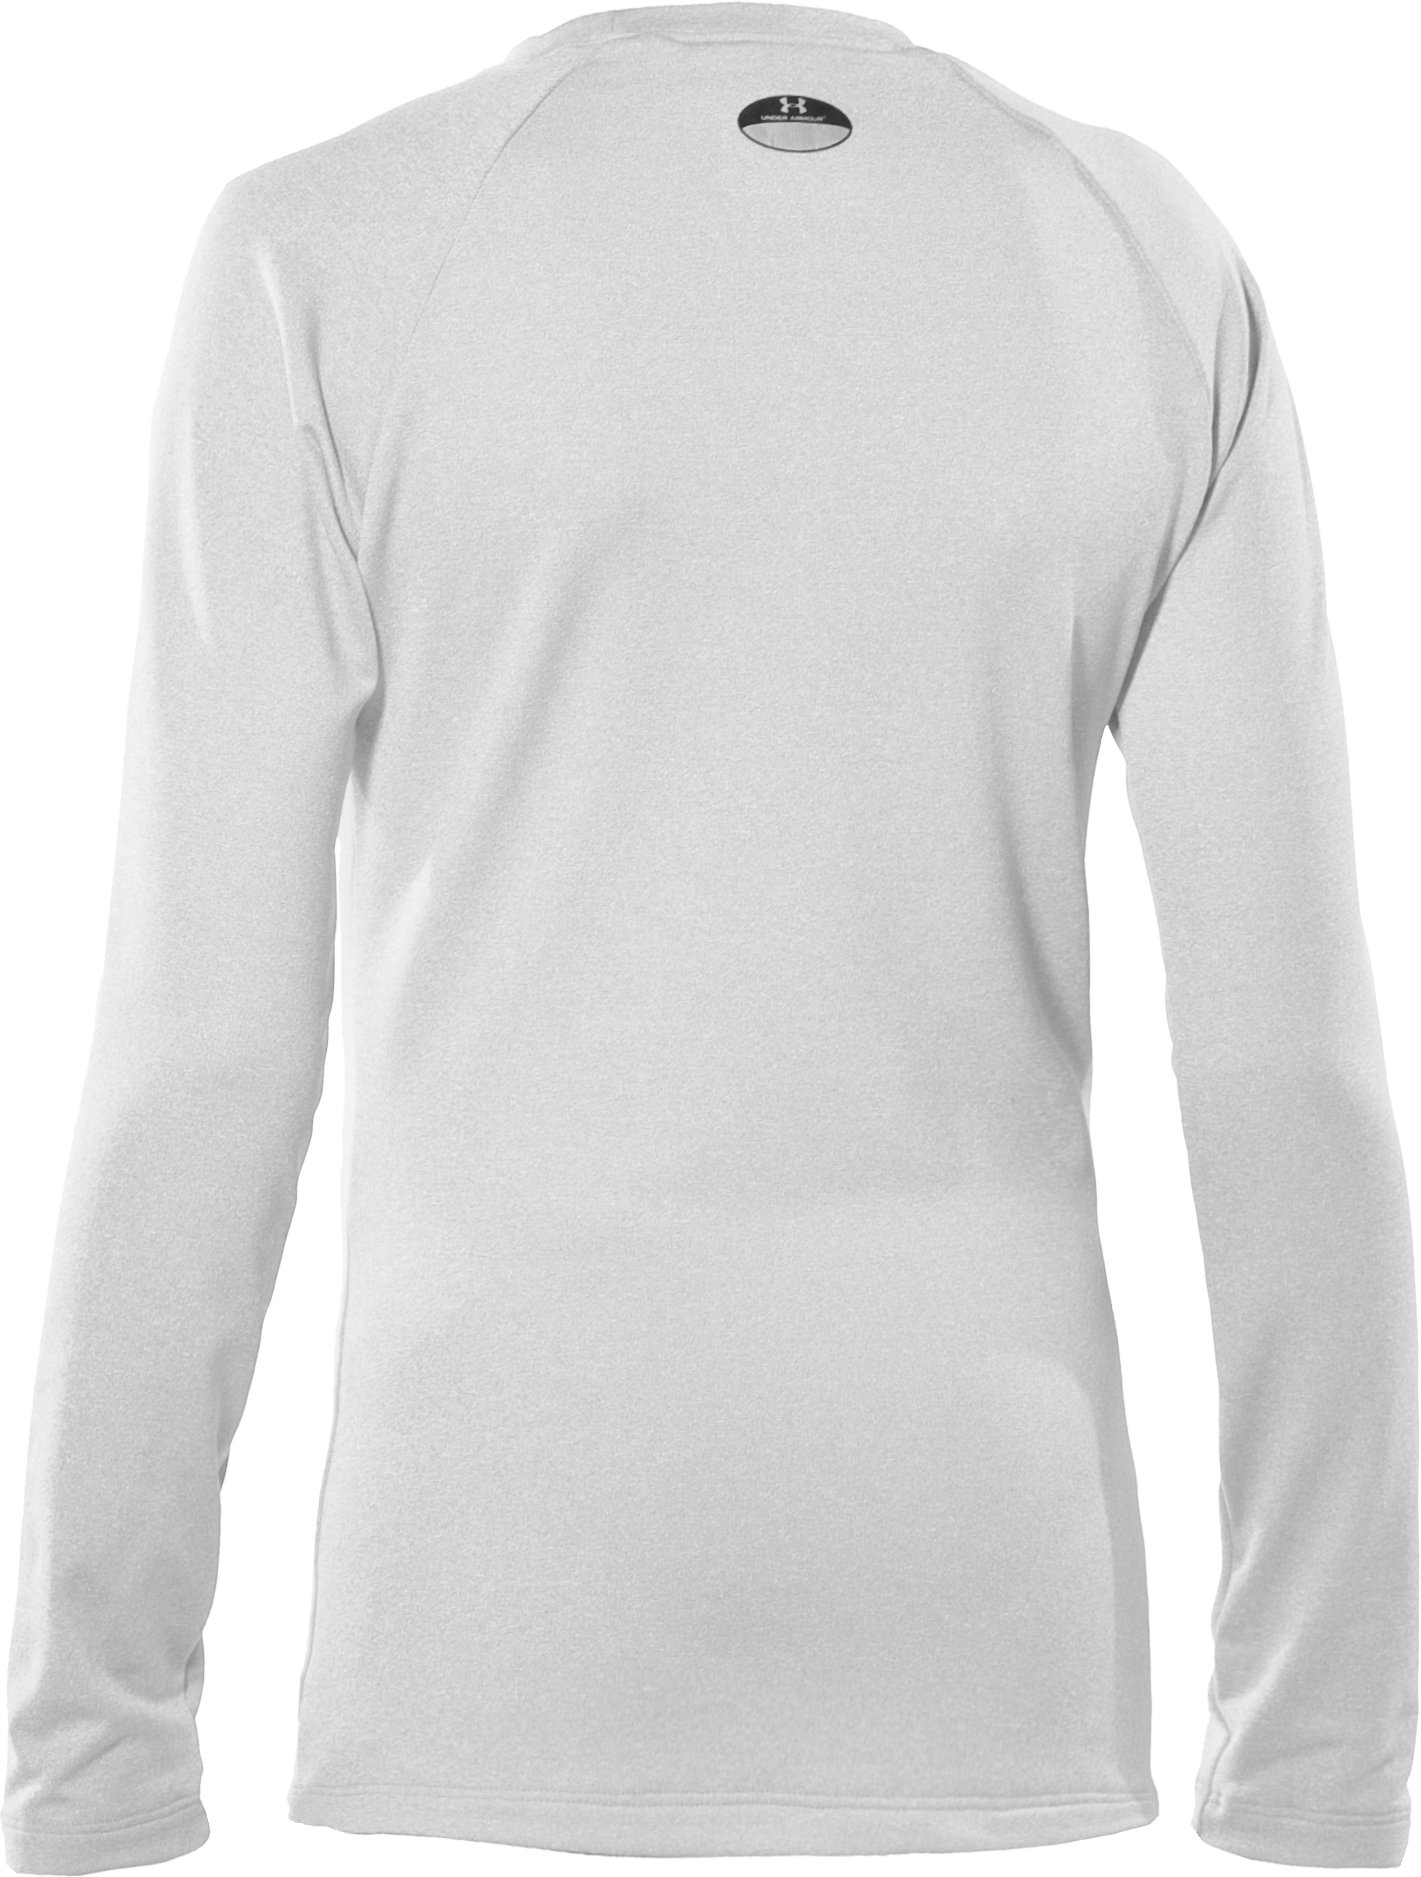 Girls' ColdGear® Fitted Long Sleeve Crew, White